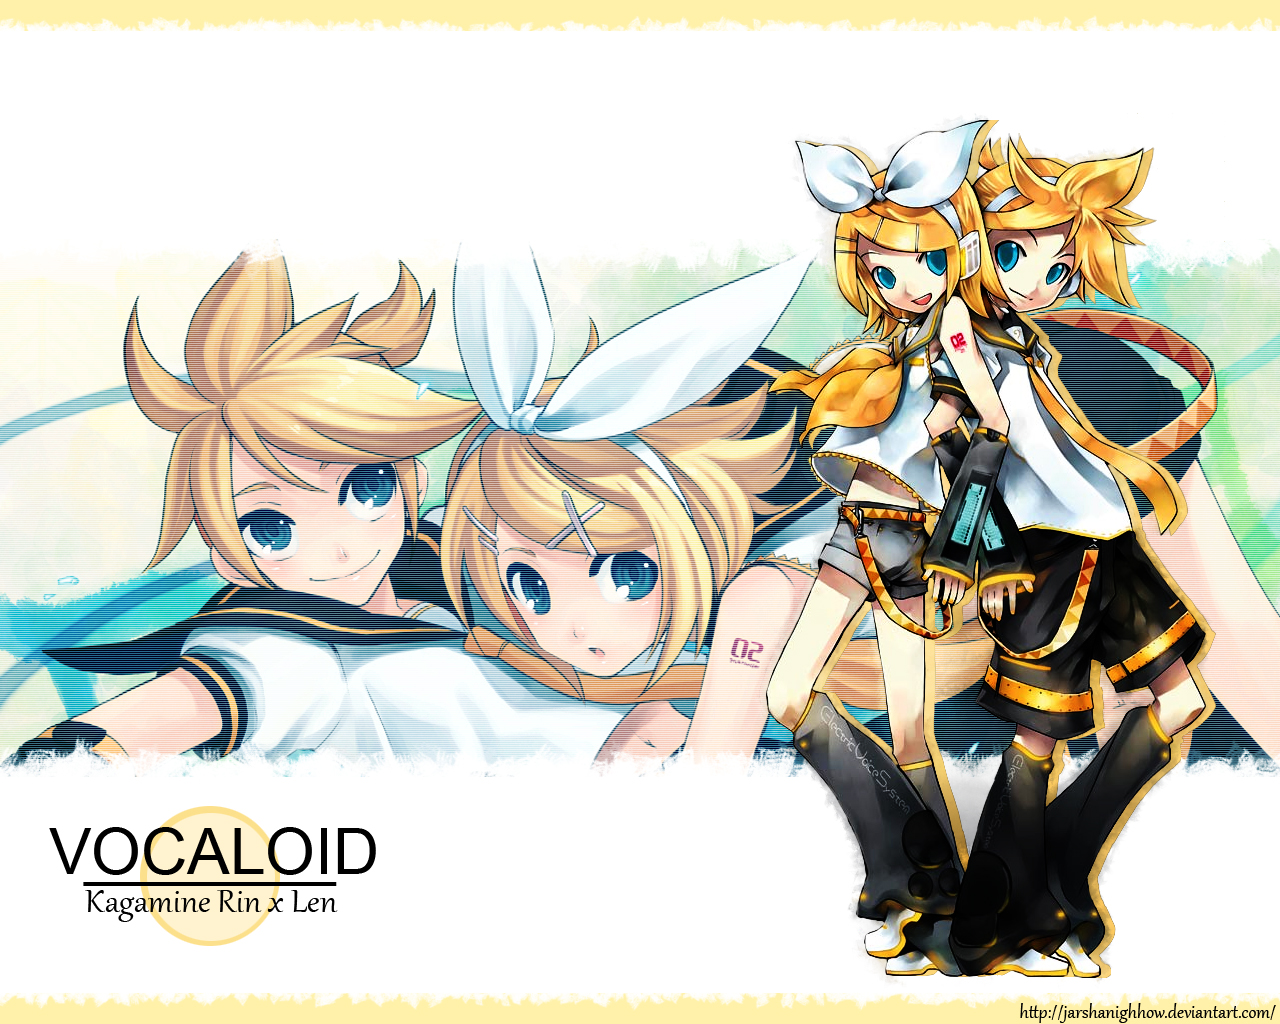 Kagamine Rin x Len wallpaper by JarshaNighhow 1280x1024